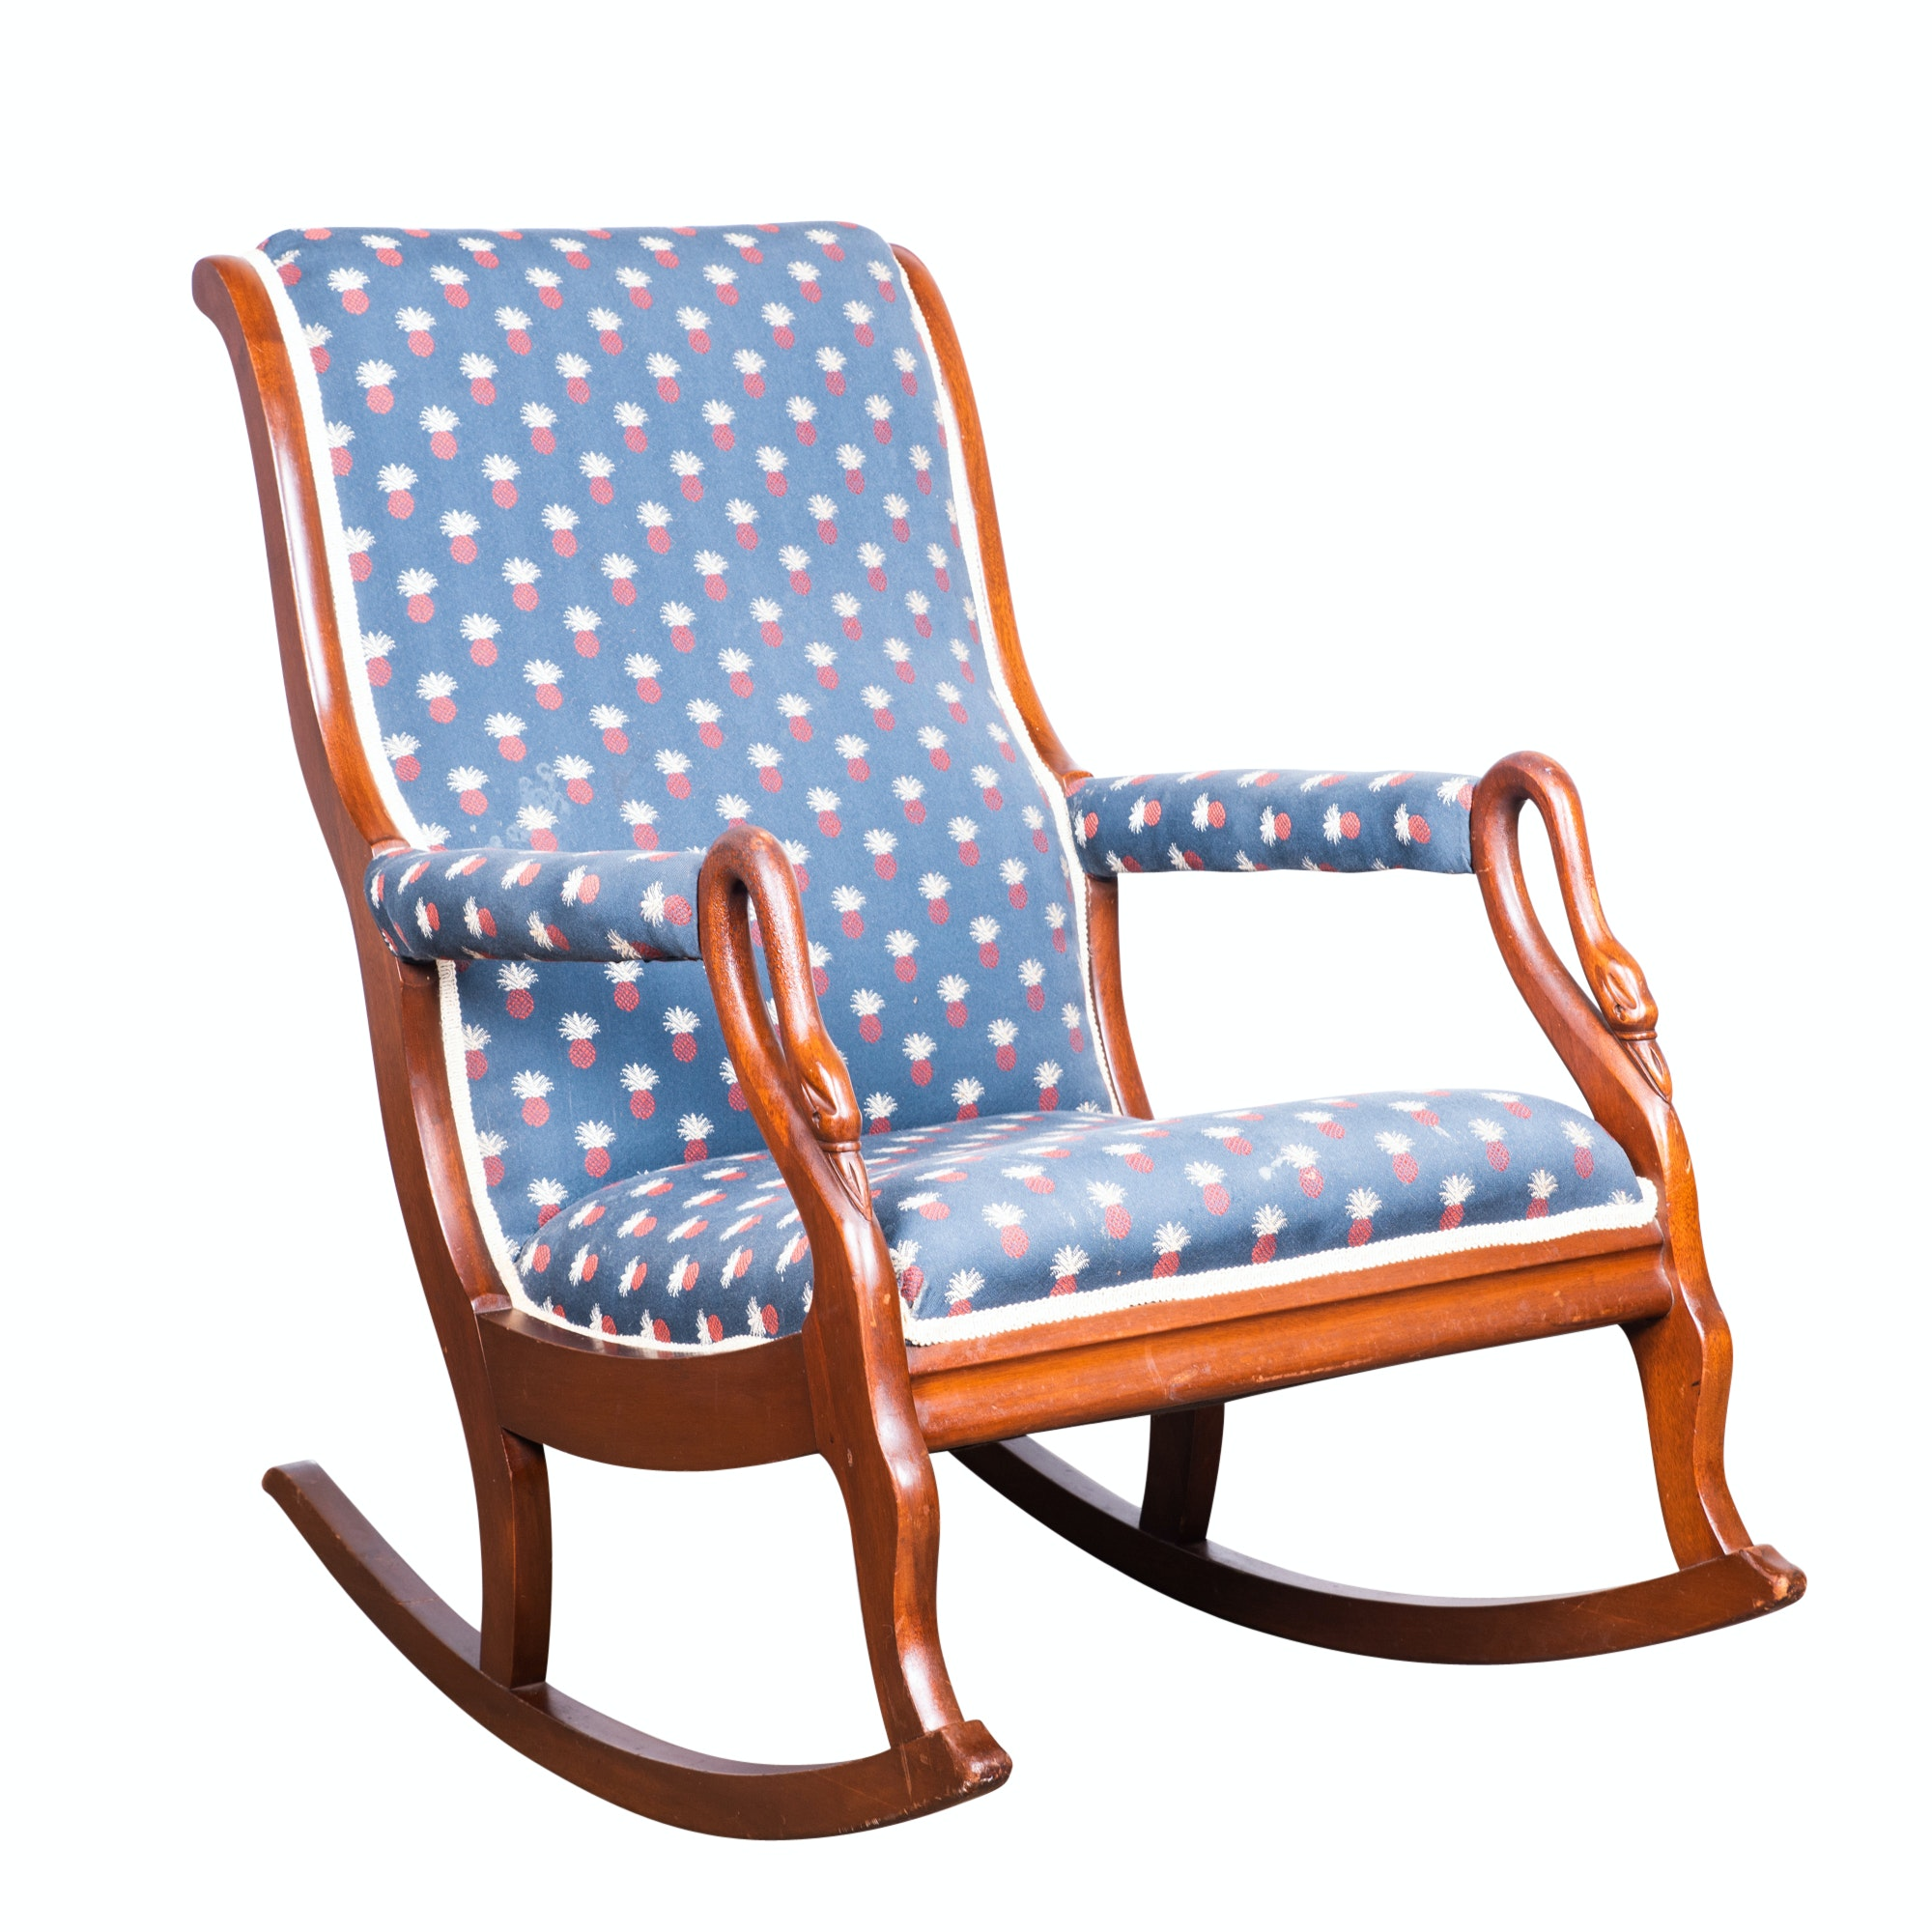 Mahogany Frame Upholstered Swan Neck Rocking Chair, Mid-20th Century